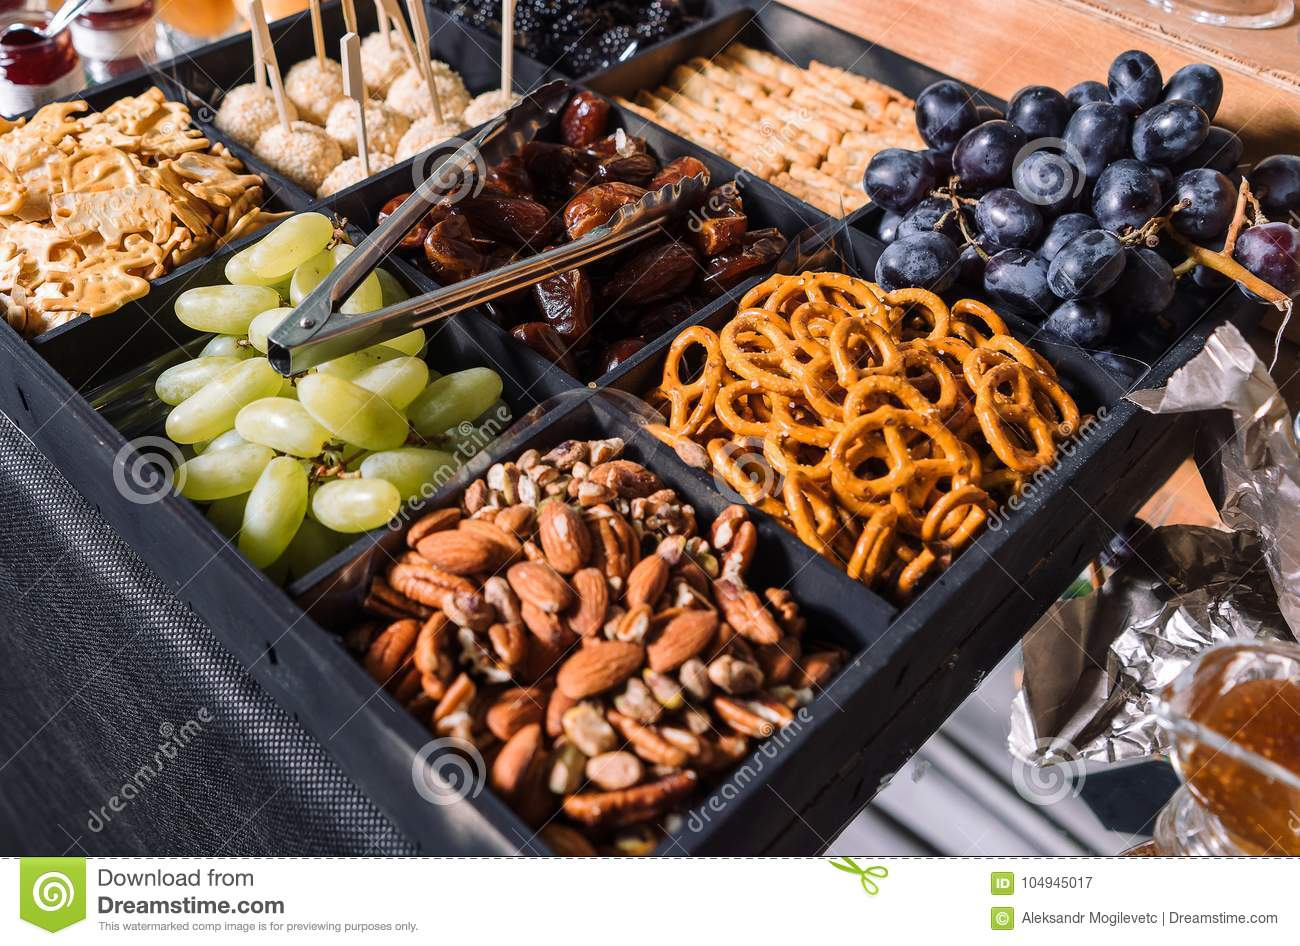 Snacks for beer-grapes, almonds, dates.